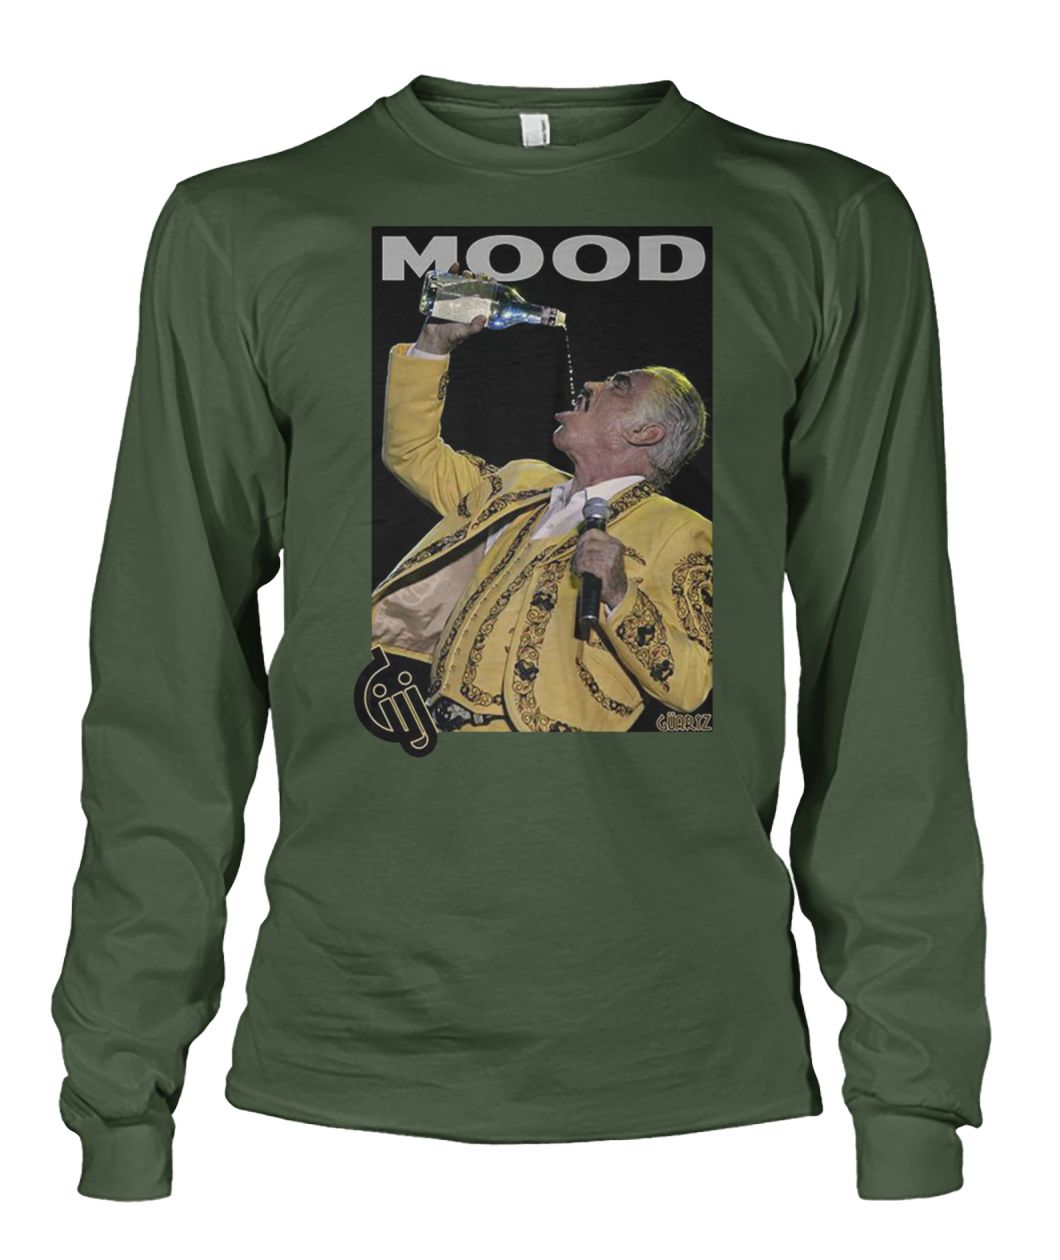 Vicente fernández drinking and singing mood unisex long sleeve